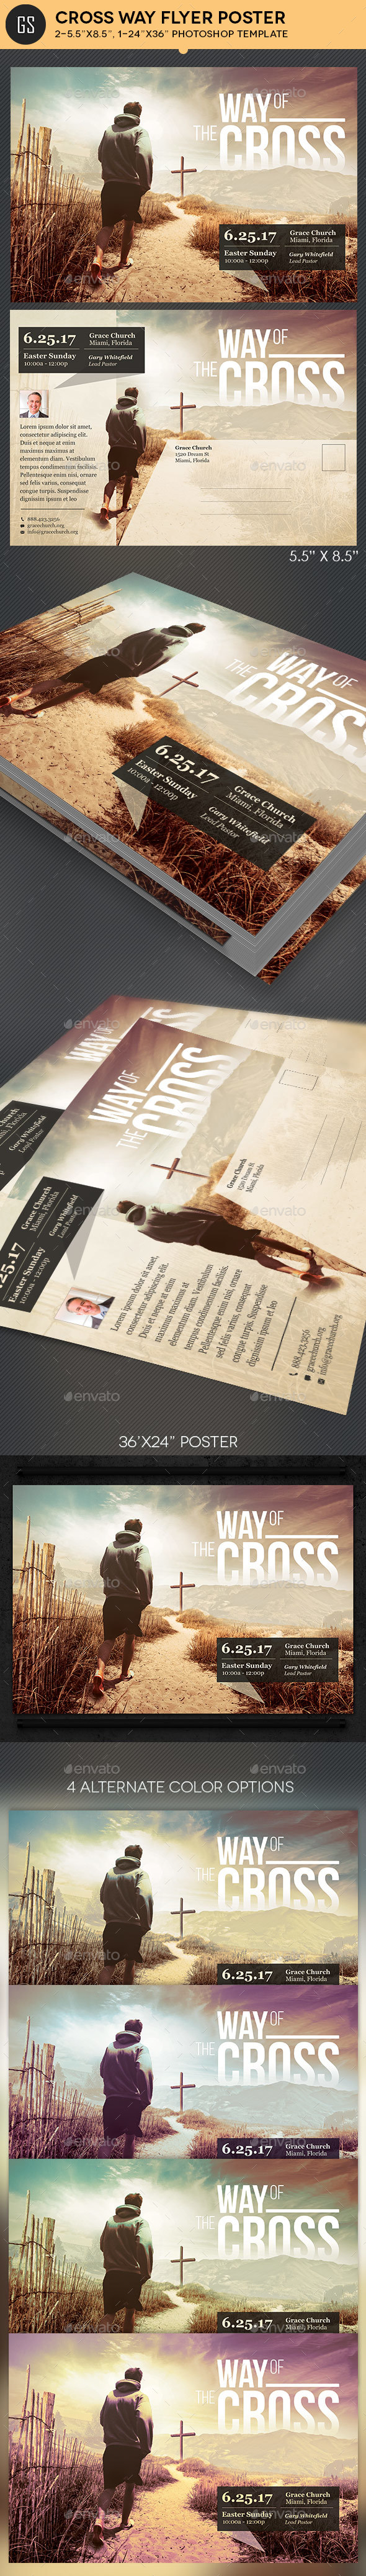 Cross Way Flyer Poster Template - Church Flyers